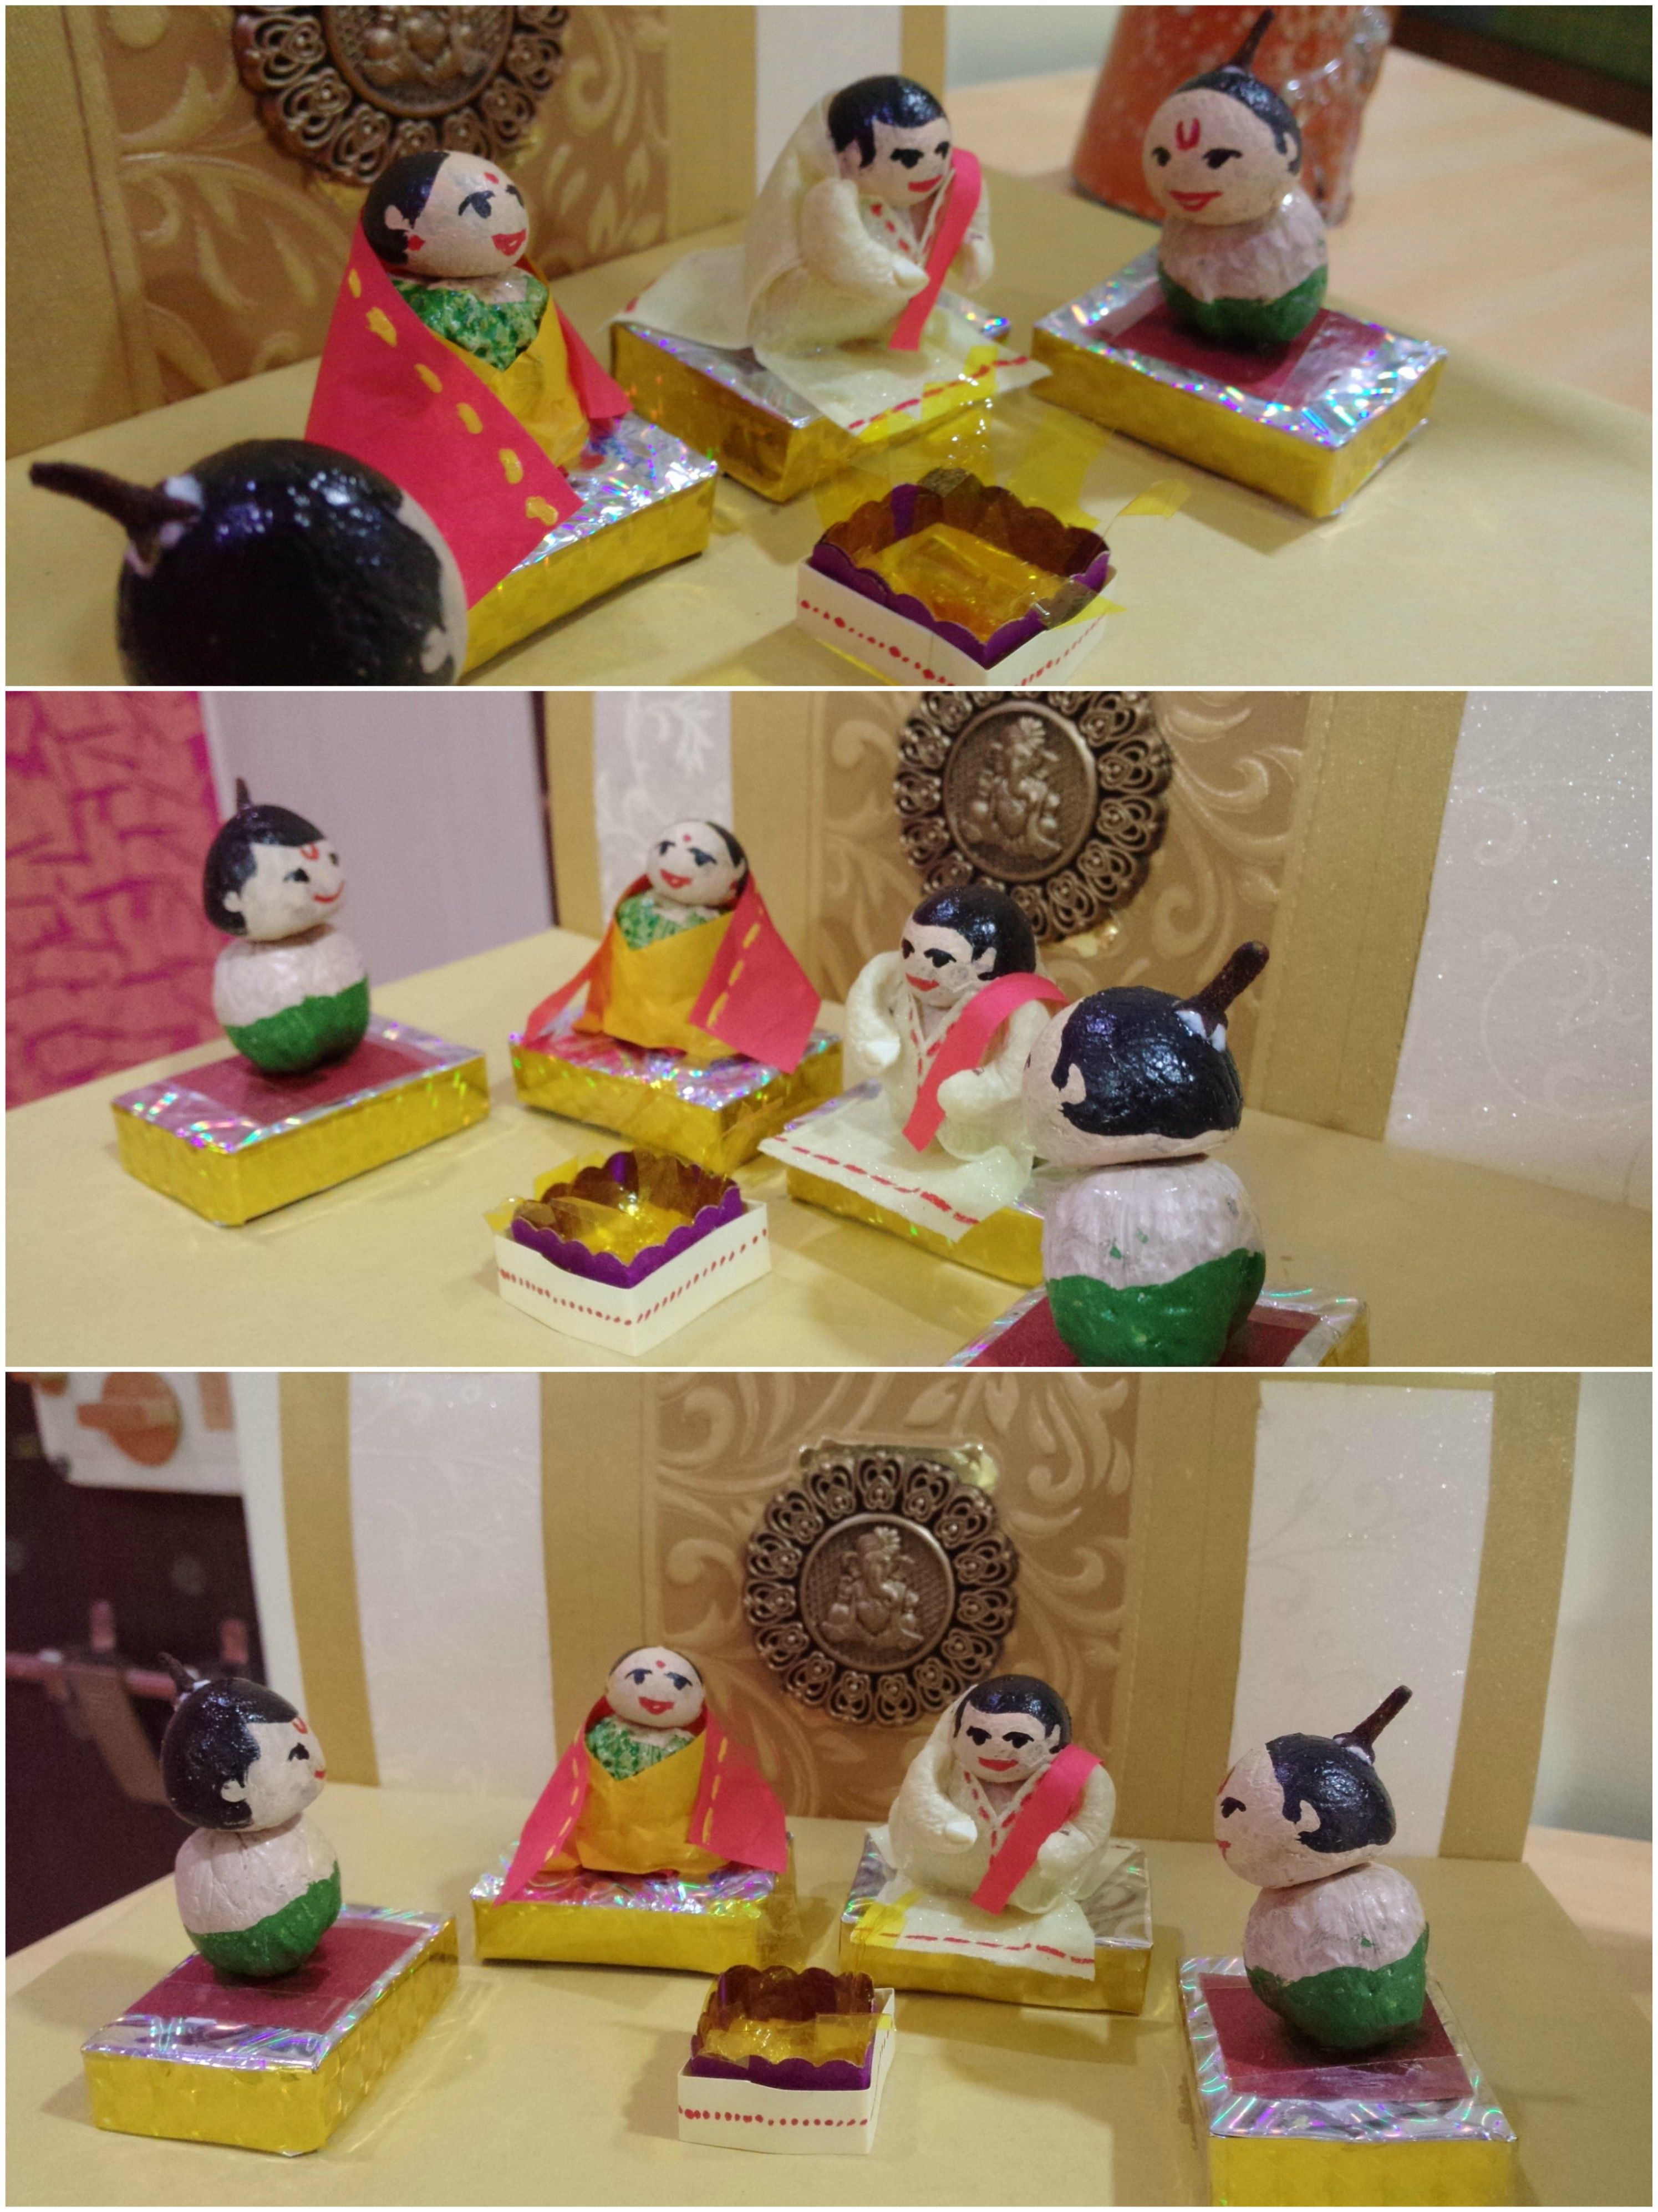 Kondapalli toys images  Bhatji  Poojari and a bride and groom performing vidhius is made